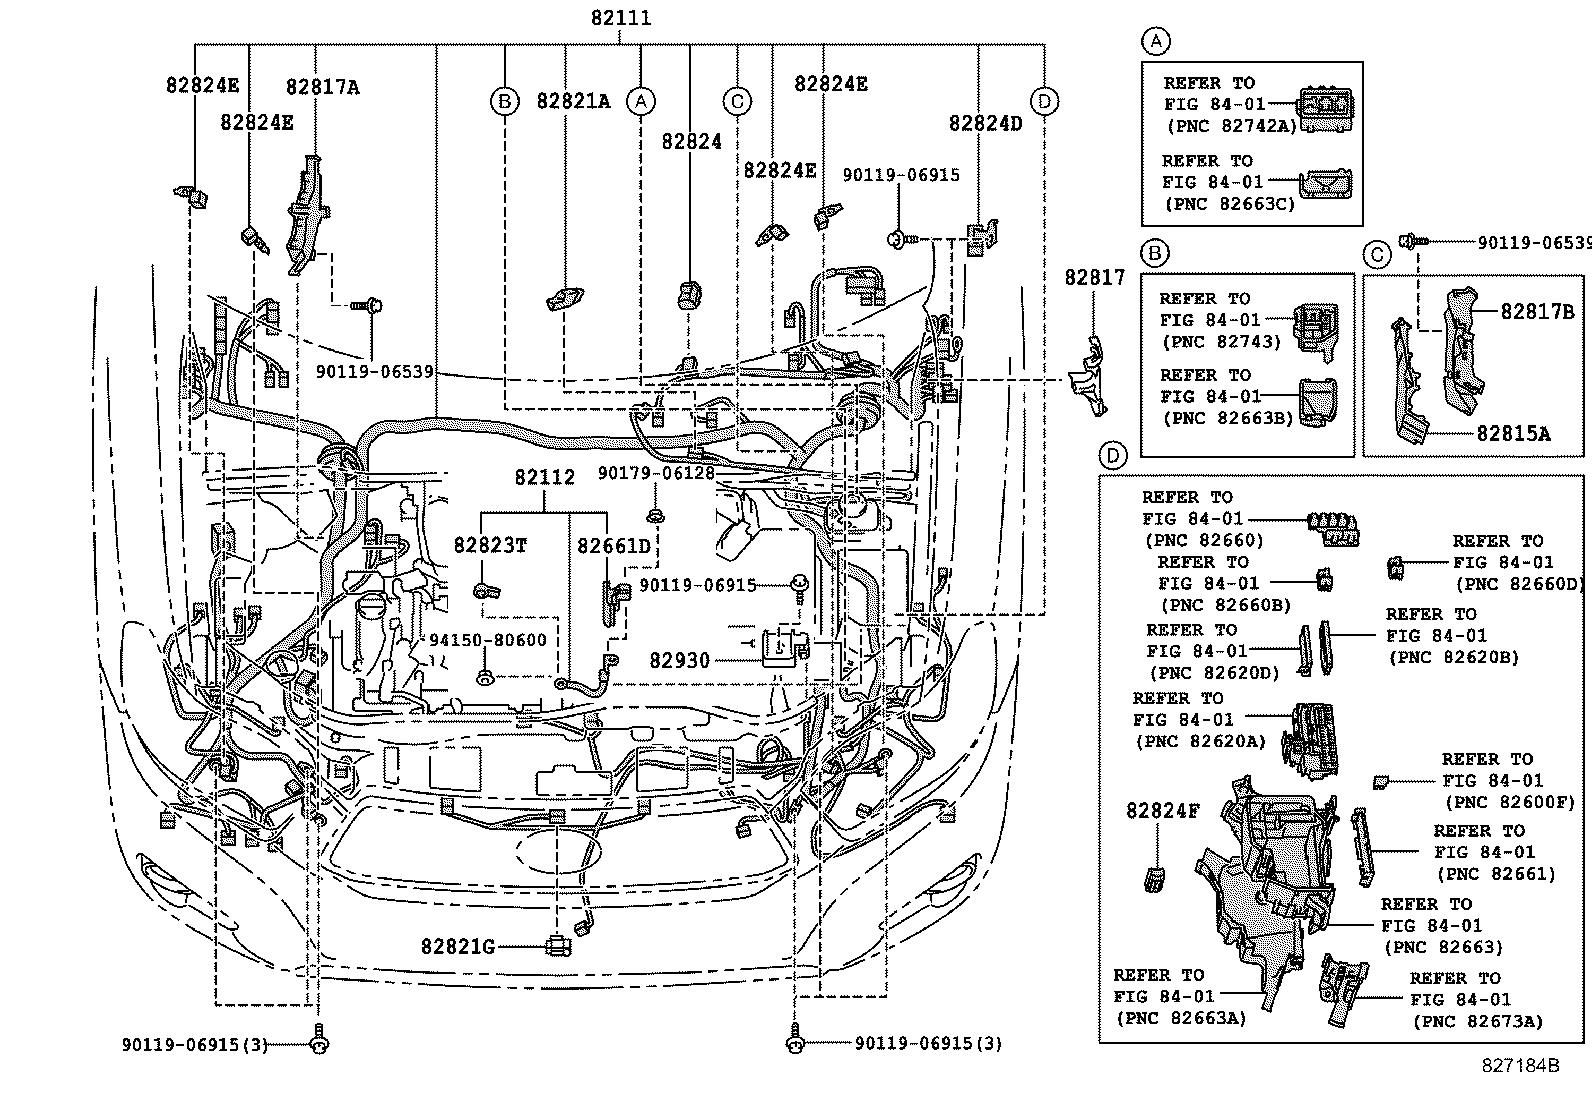 Toyota Sequoia Connector Wiring Harness